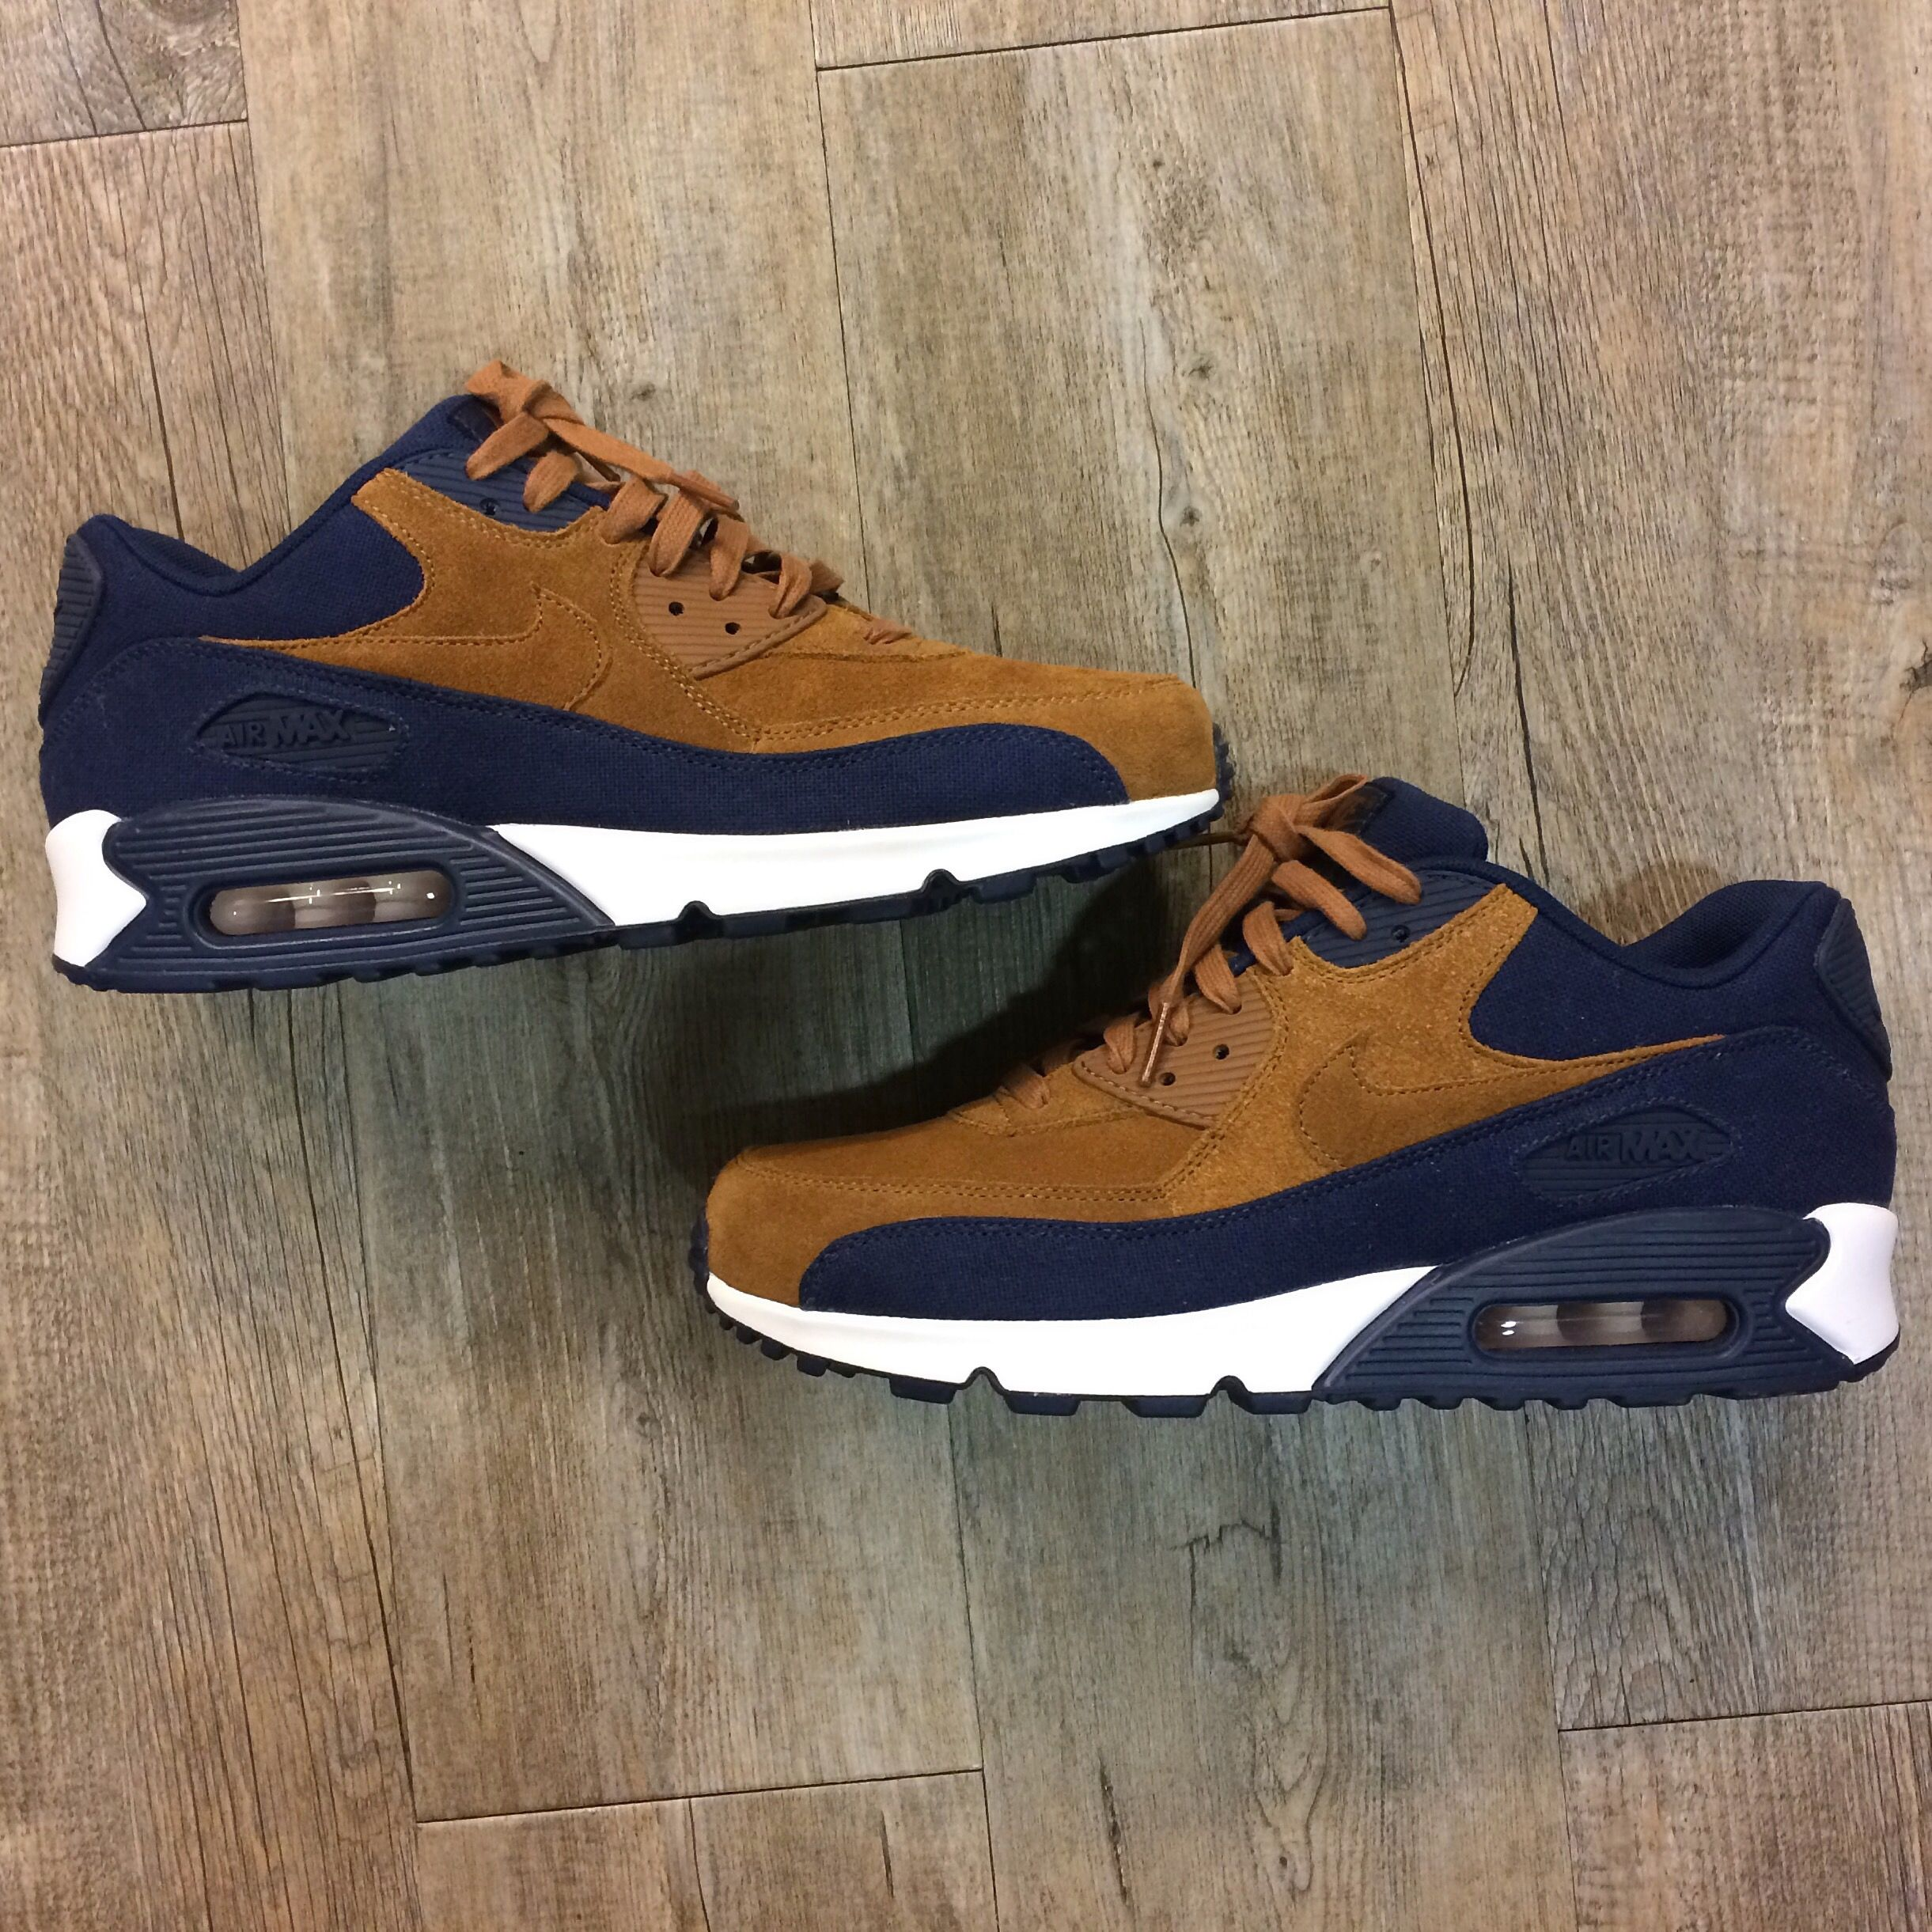 """6fa31c949fe26 Soleheaven Curated Collections on Instagram: """"Our latest addition to the  beautifully seasonal 'Bronze pack' is this; the Air Max 90 'Bronze', and  this is ..."""